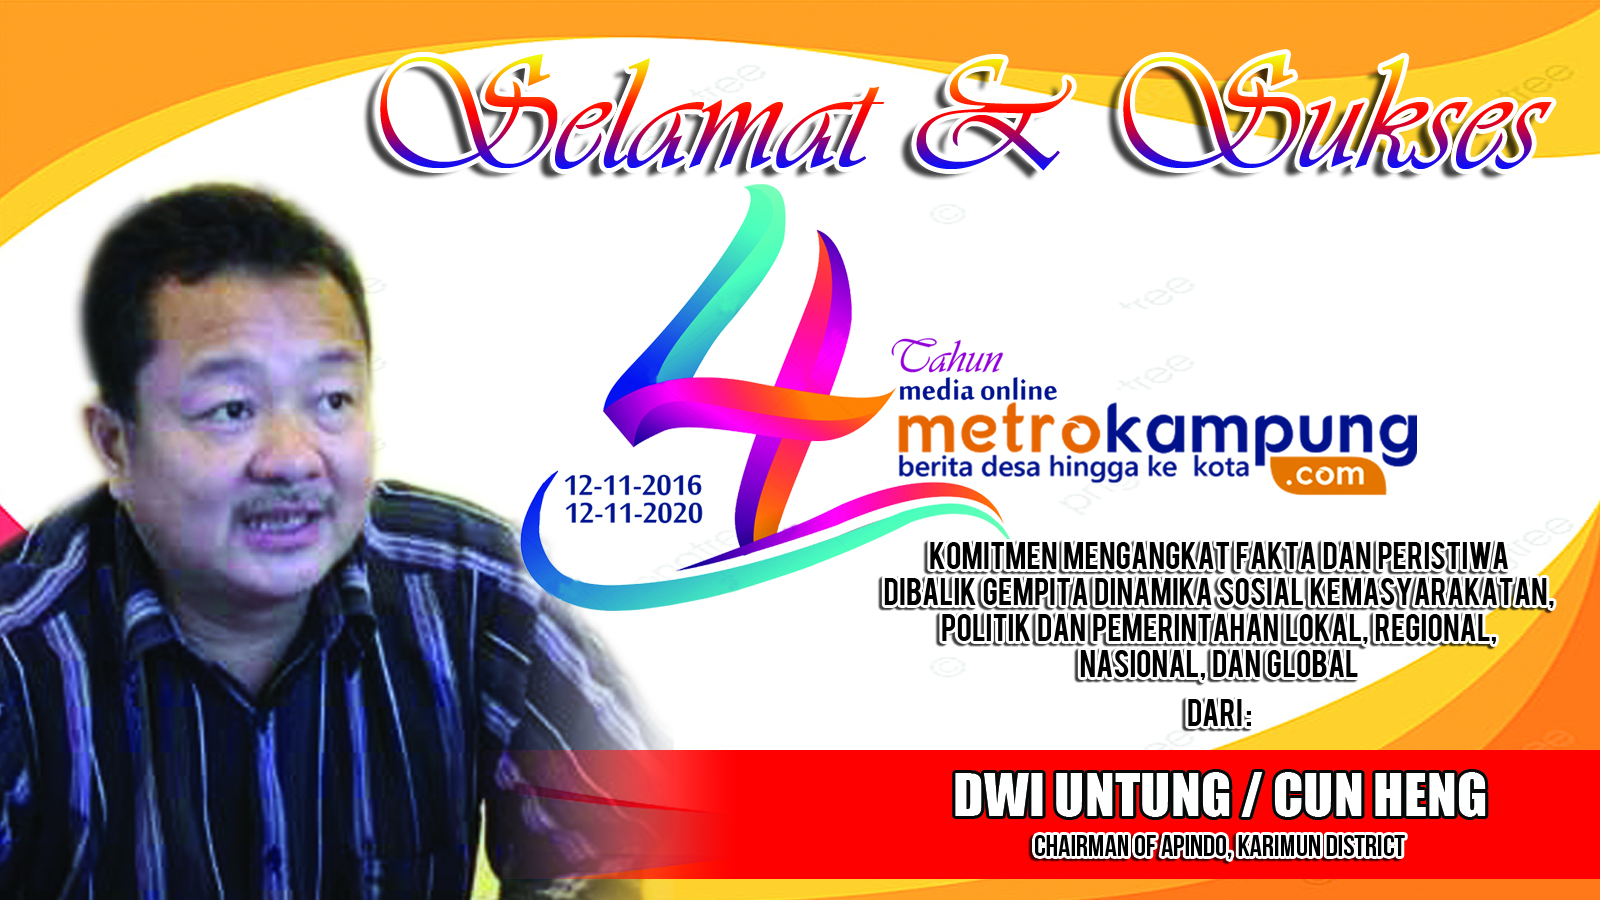 CHAIRMAN OF APINDO, KARIMUN DISTRICT